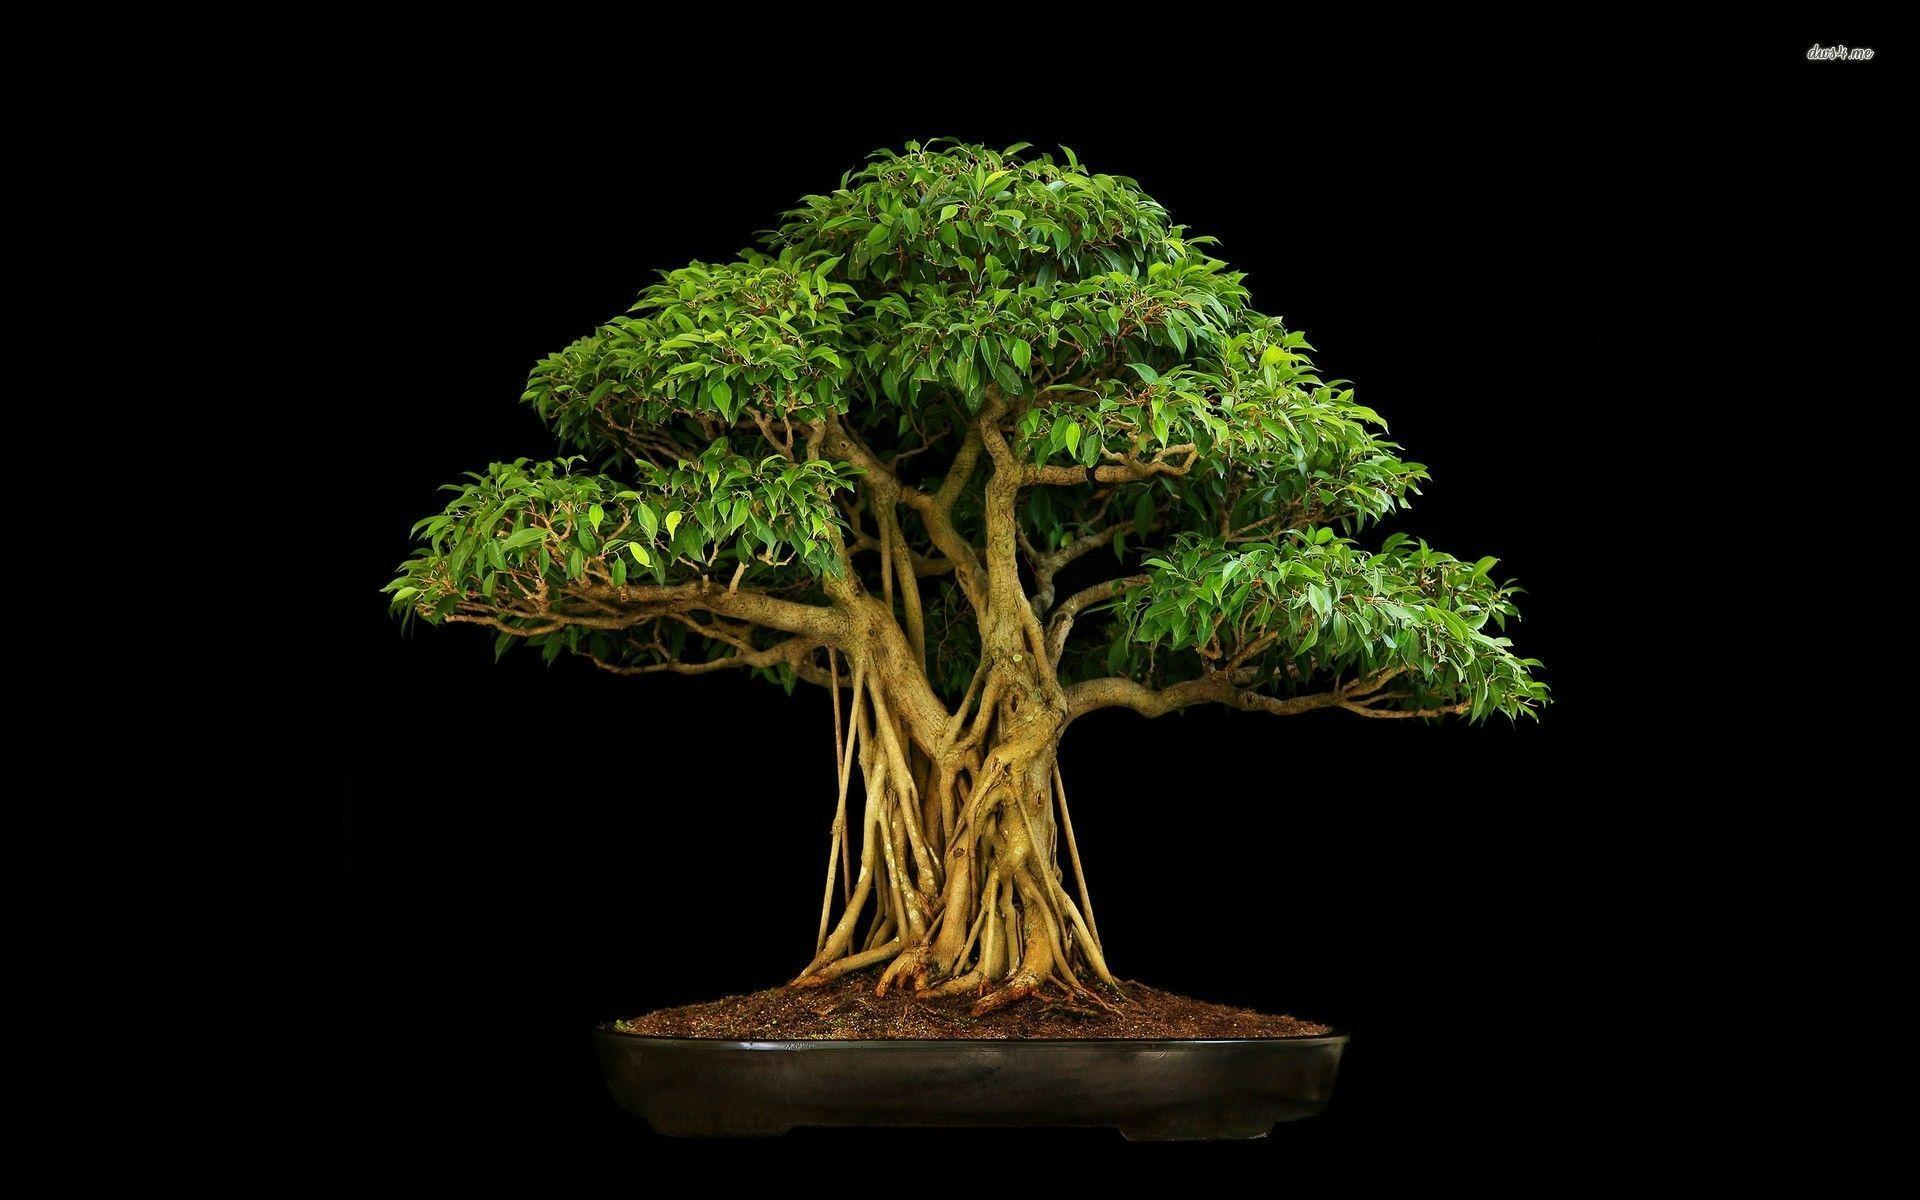 Bonsai wallpaper - 976656